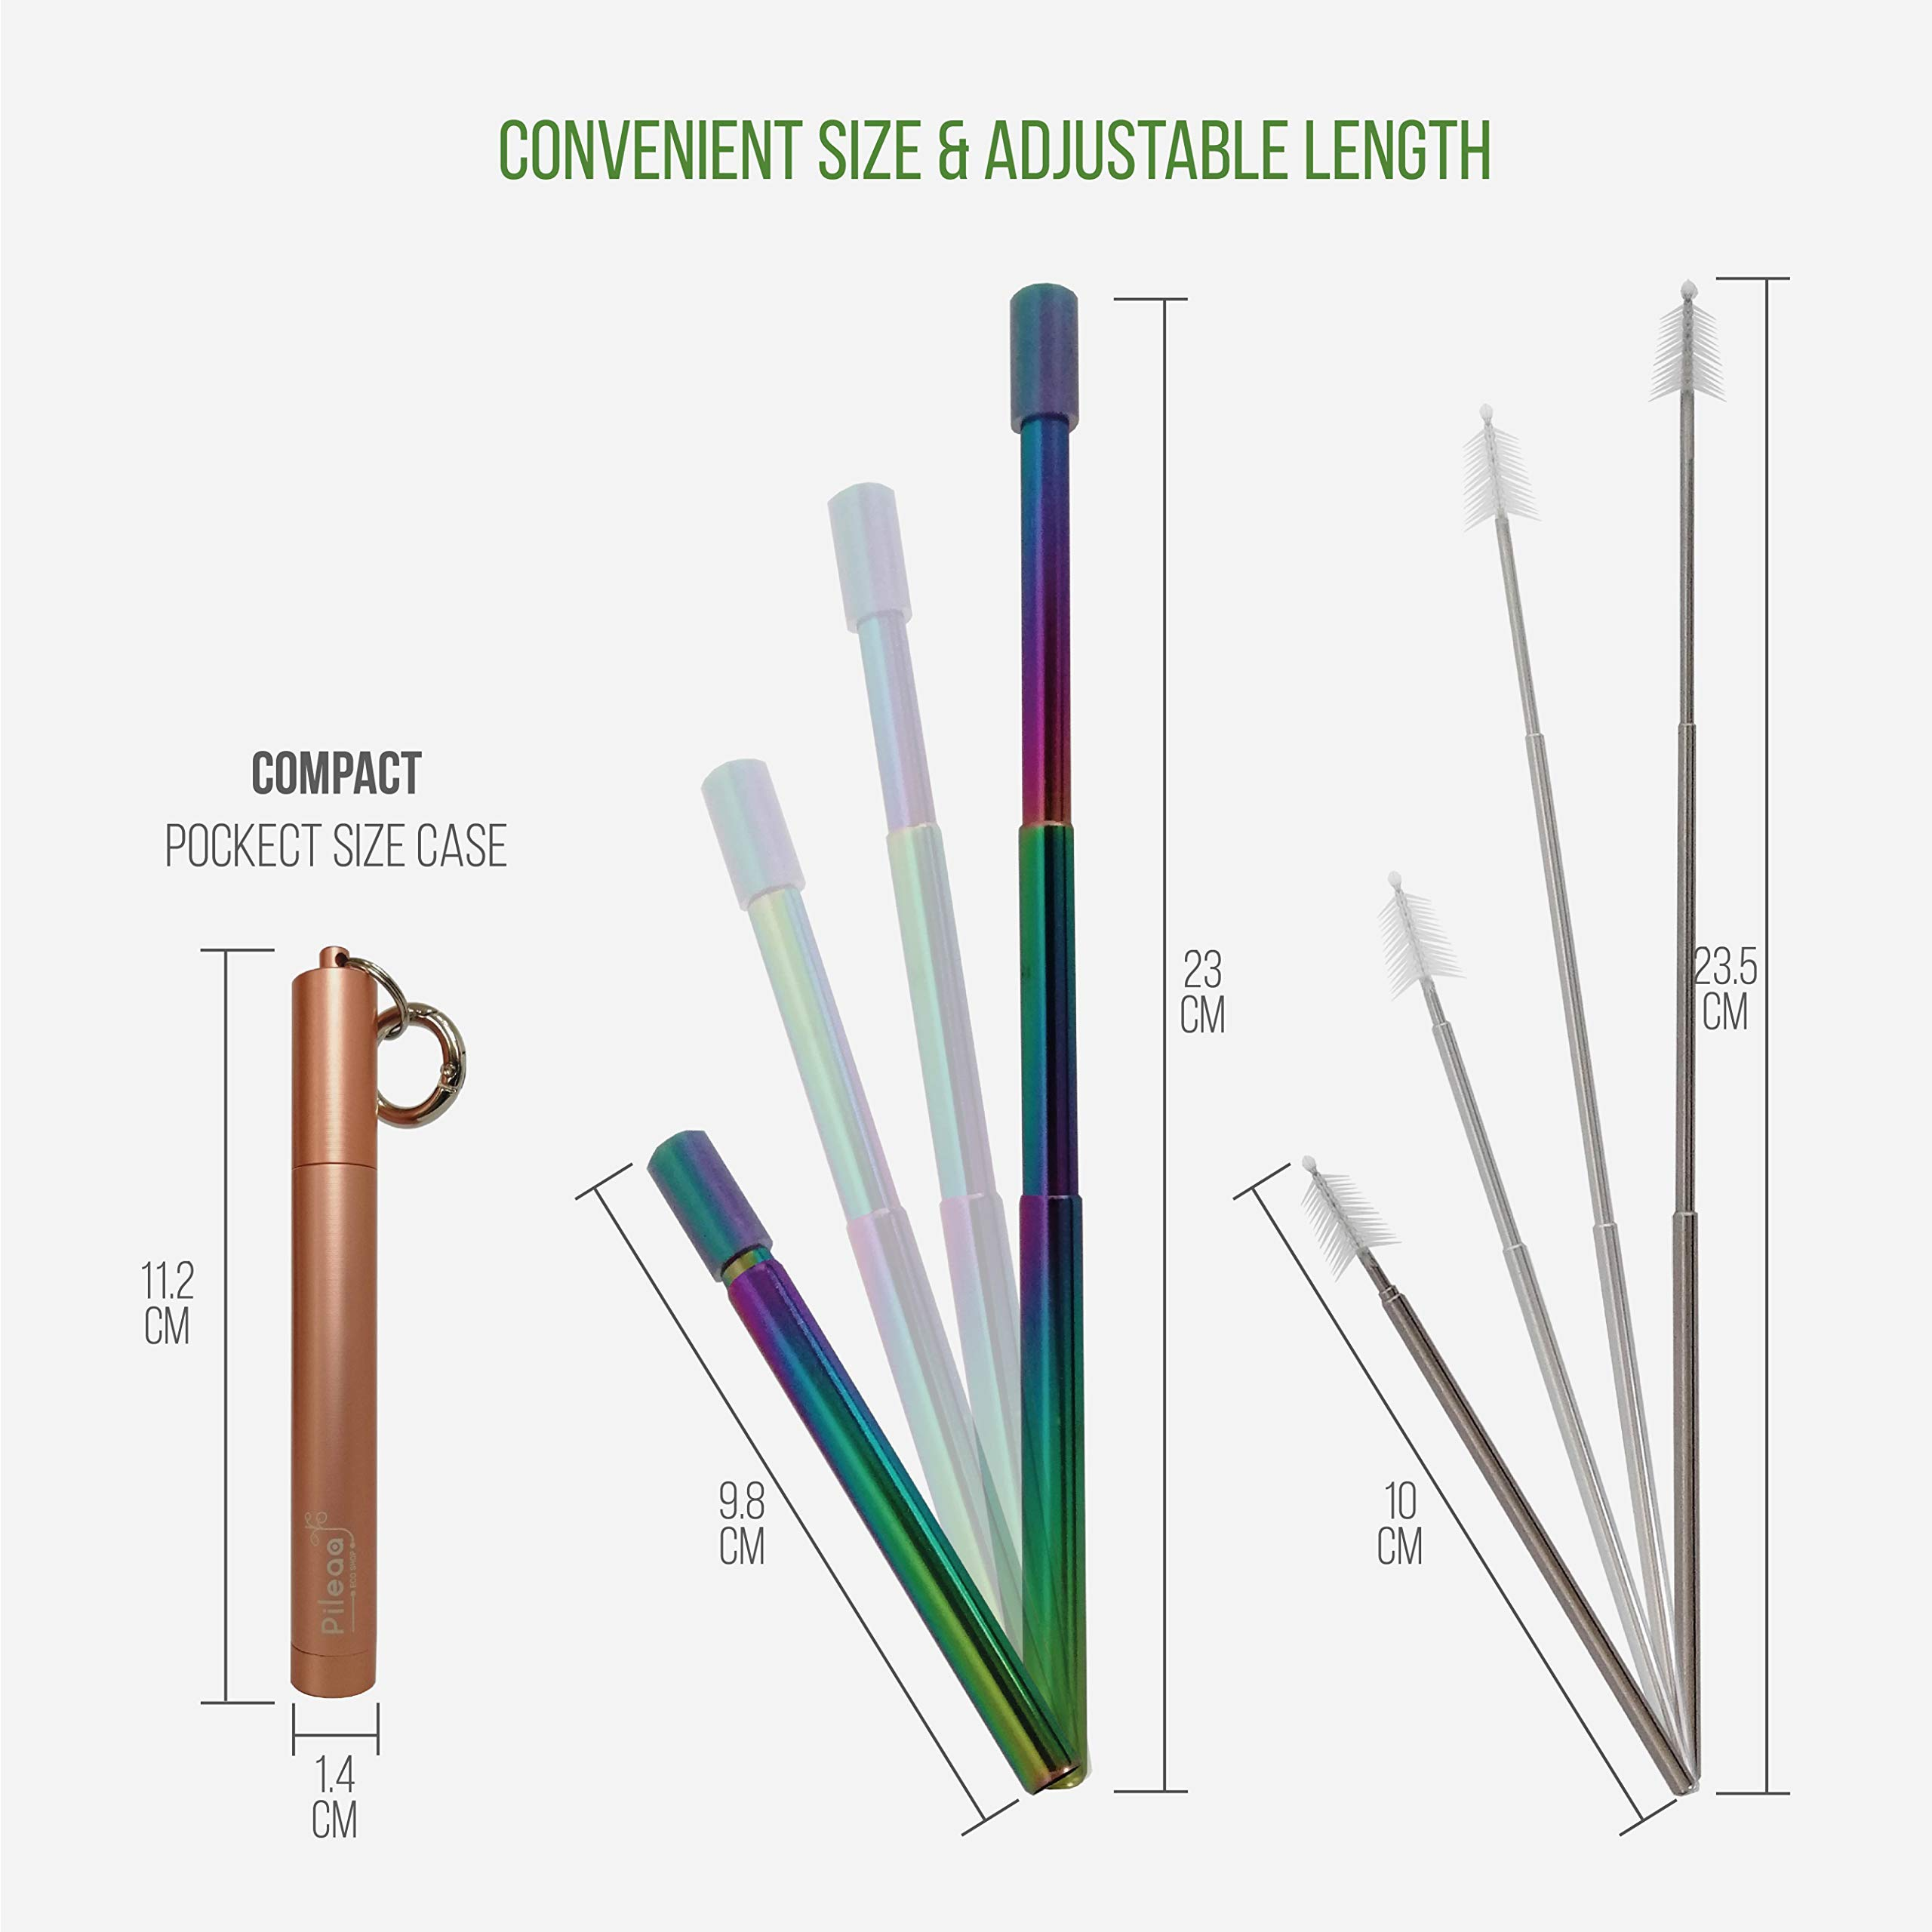 Pileaa Stainless Steel Straw with case, Rainbow Reusable Metal Straw, Retractable Telescopic Straw, Travel Portable Straw with Brush, Pocket Straws, Zero Waste Products, Gold Rose